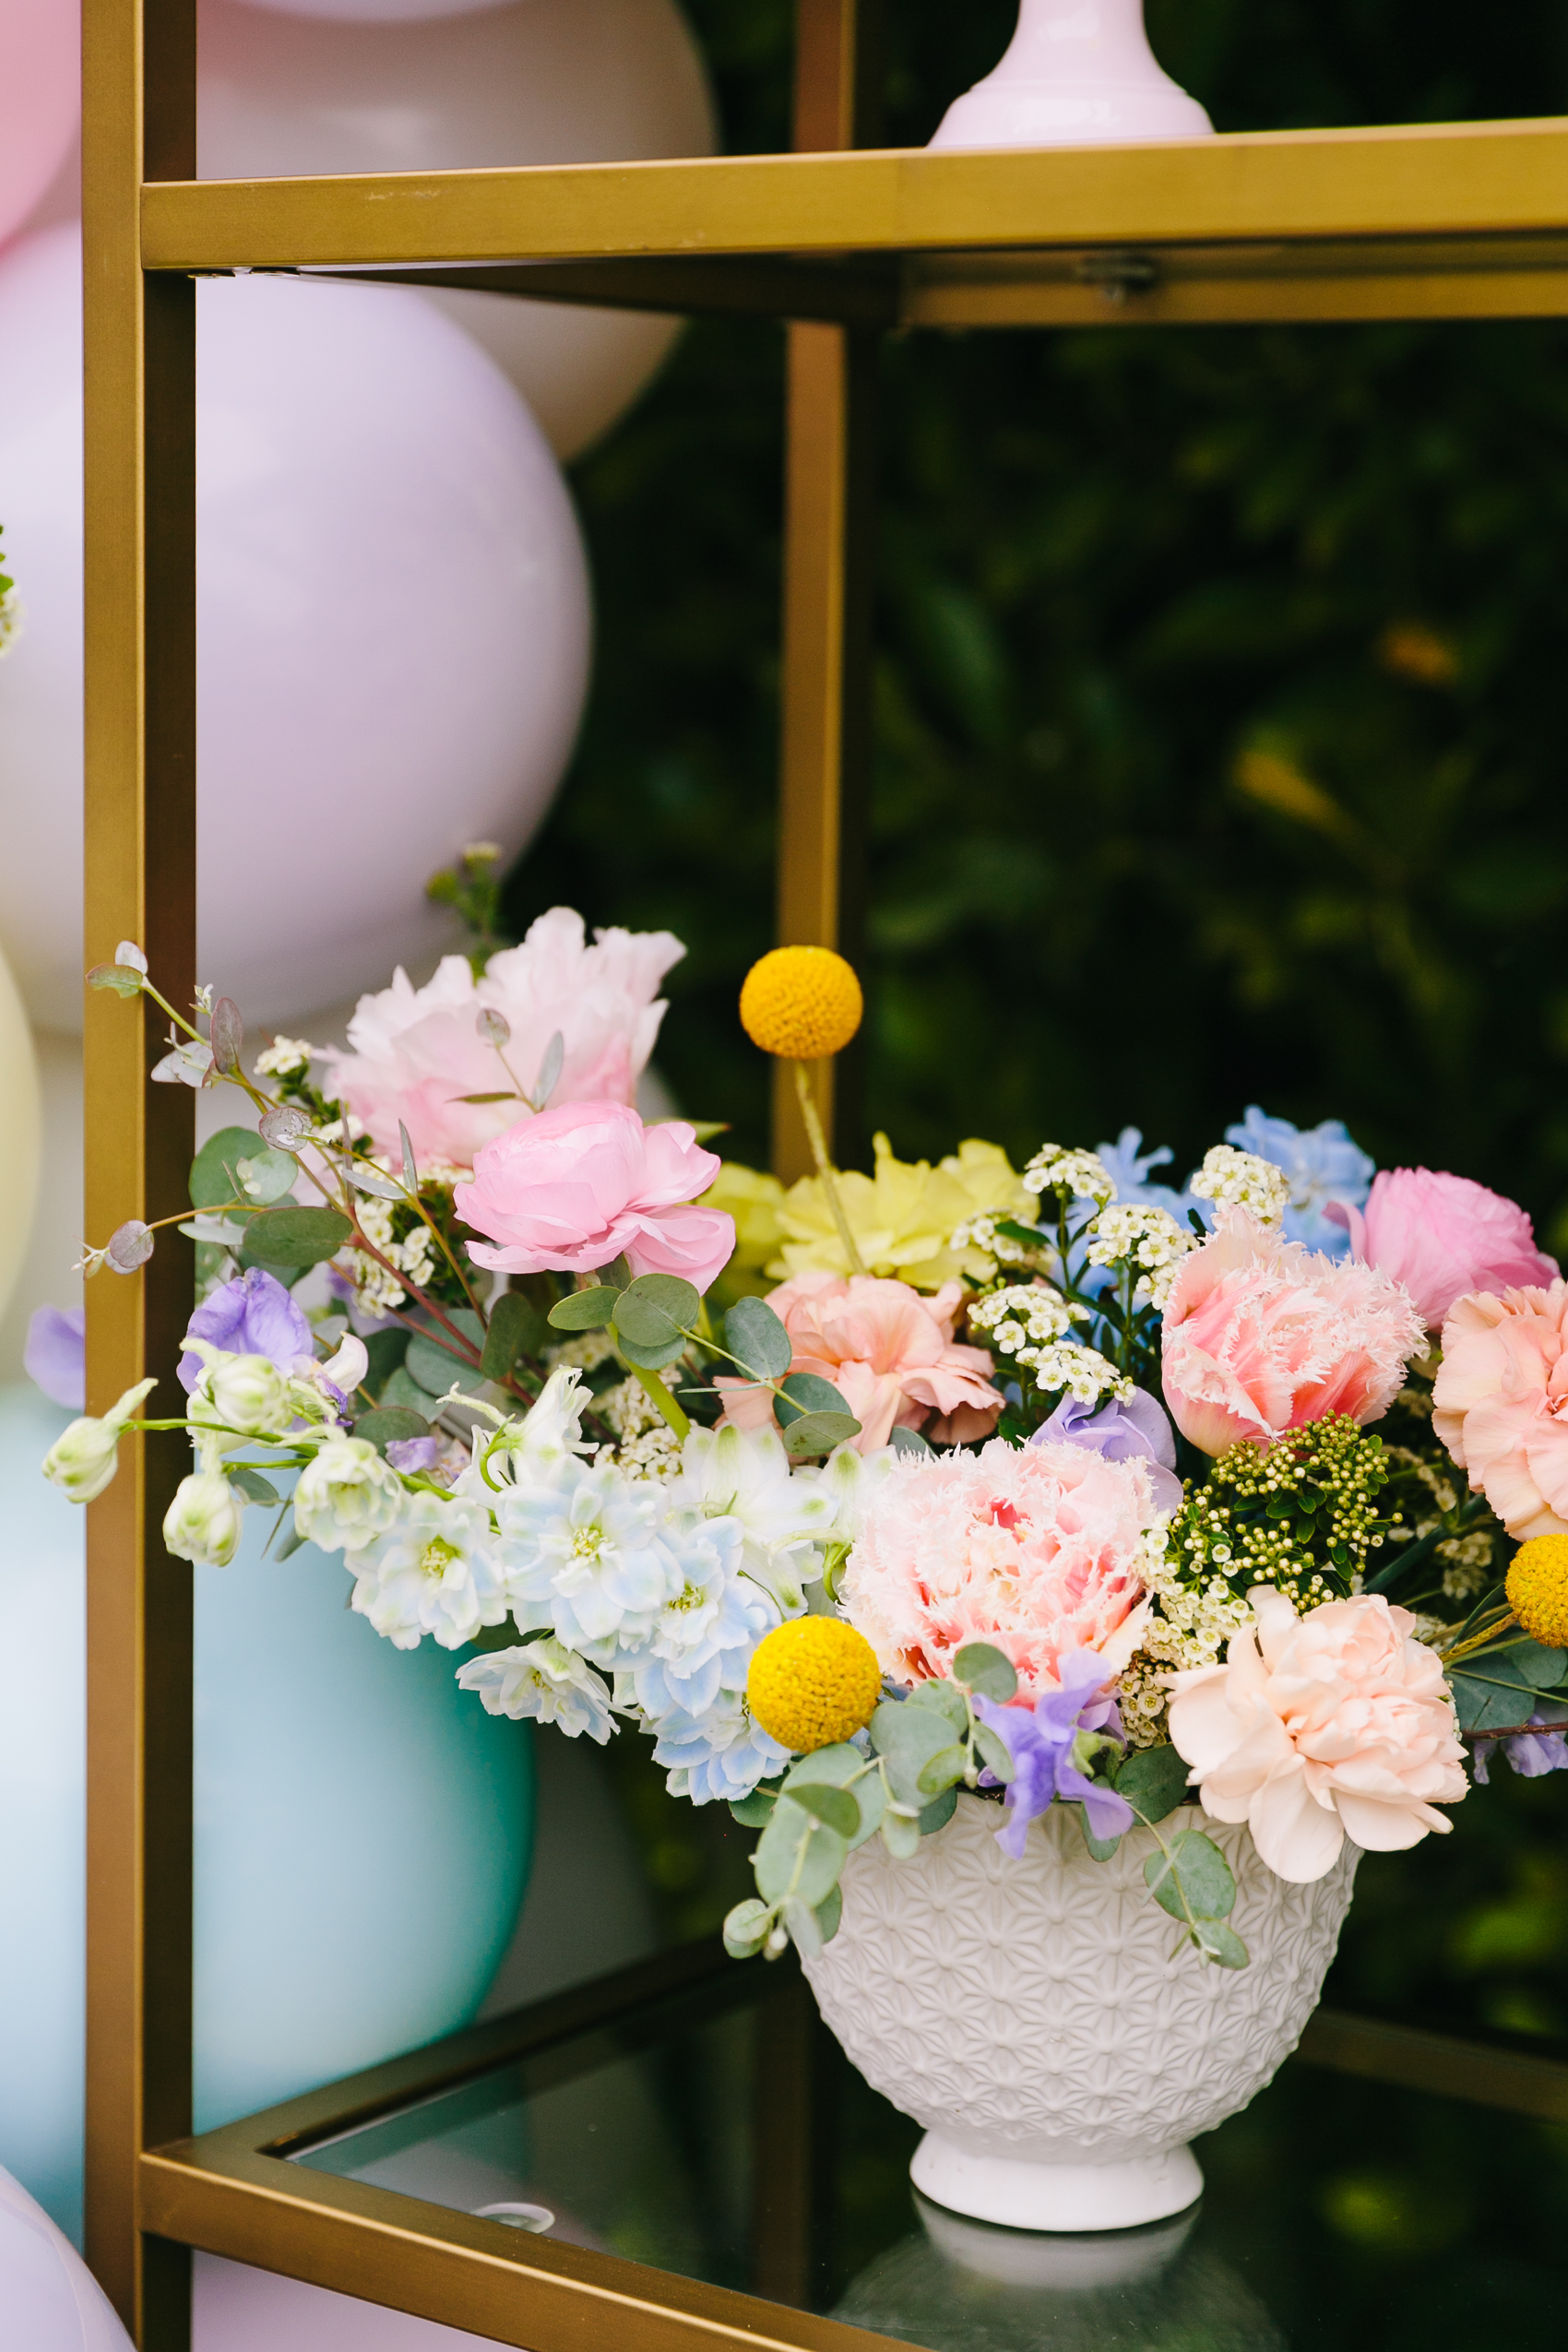 Los_Angeles_Family_Photographer_Luxury_Childrens_Party_Beverly_Hills_Unicorn_Birthday_Party-0024.jpg